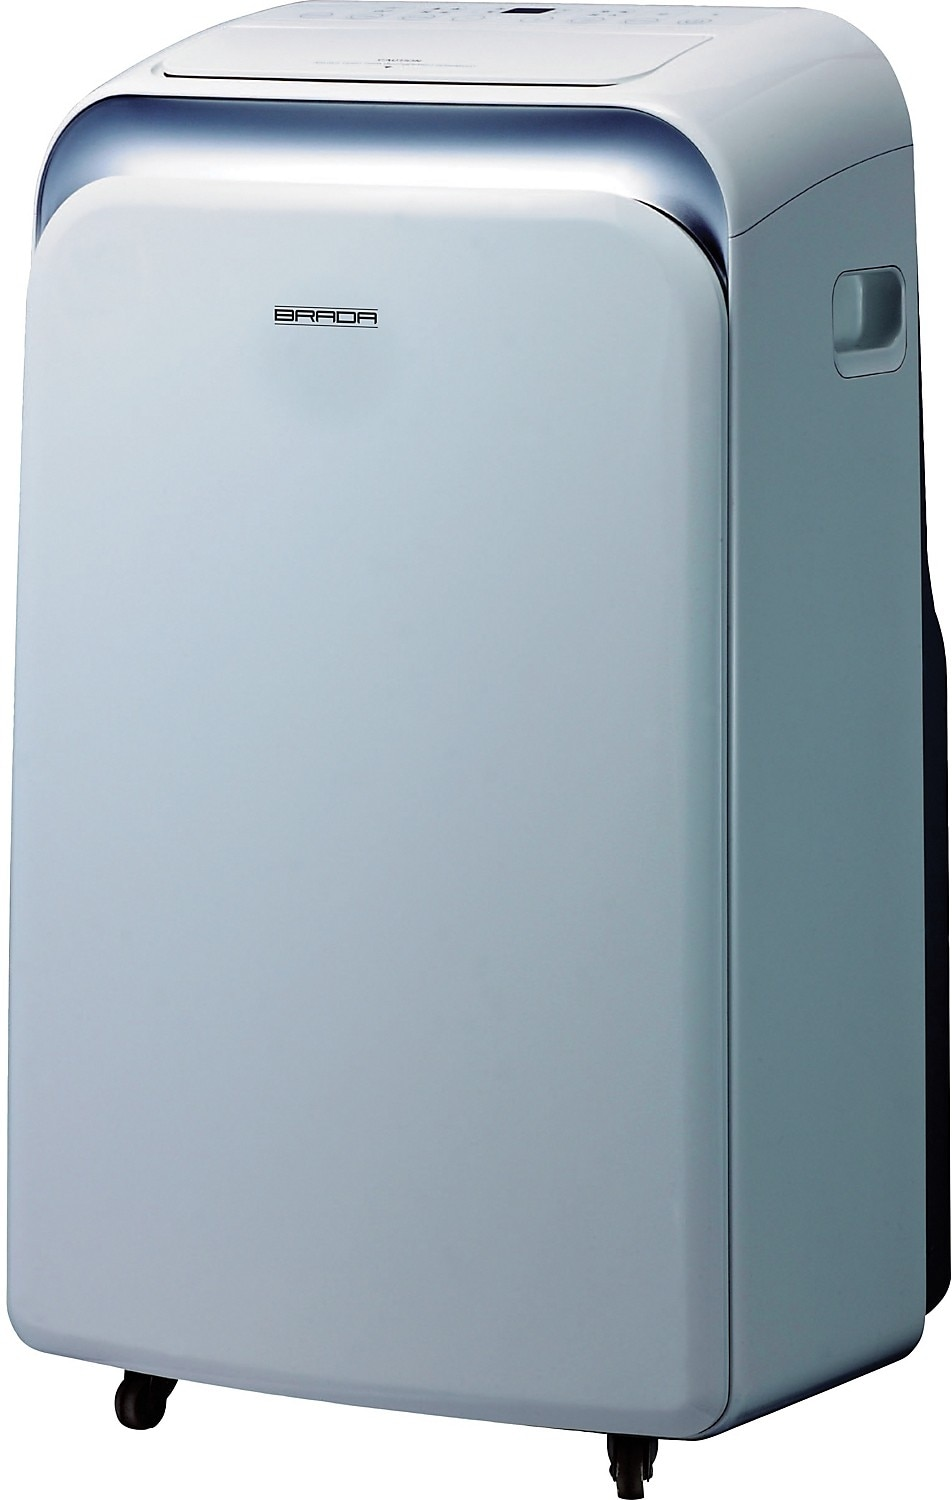 Heating_Cooling - Brada 12,000 BTU Portable Air Conditioner and Heater